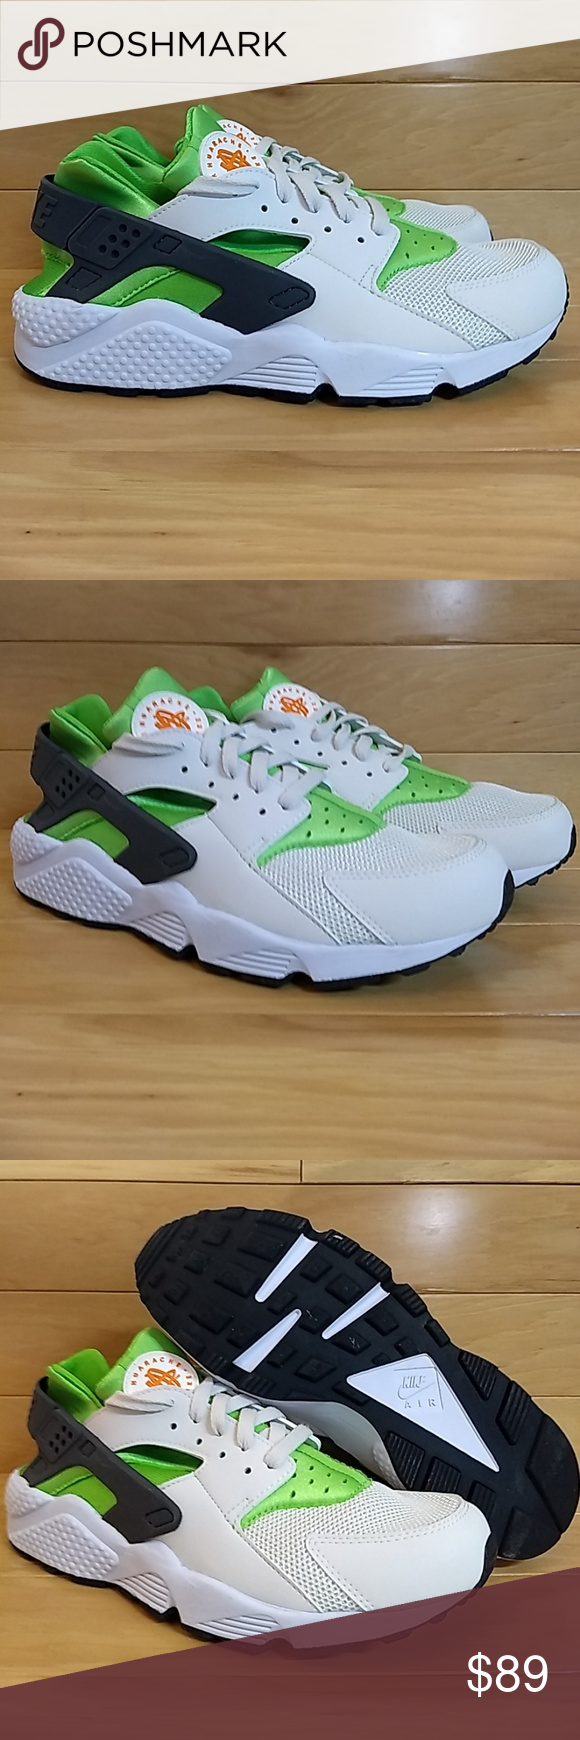 82a9c377fe4e Nike Air Huarache 10.5 Green Orange 318429-304 Item  Nike Air Huarache  Style Code